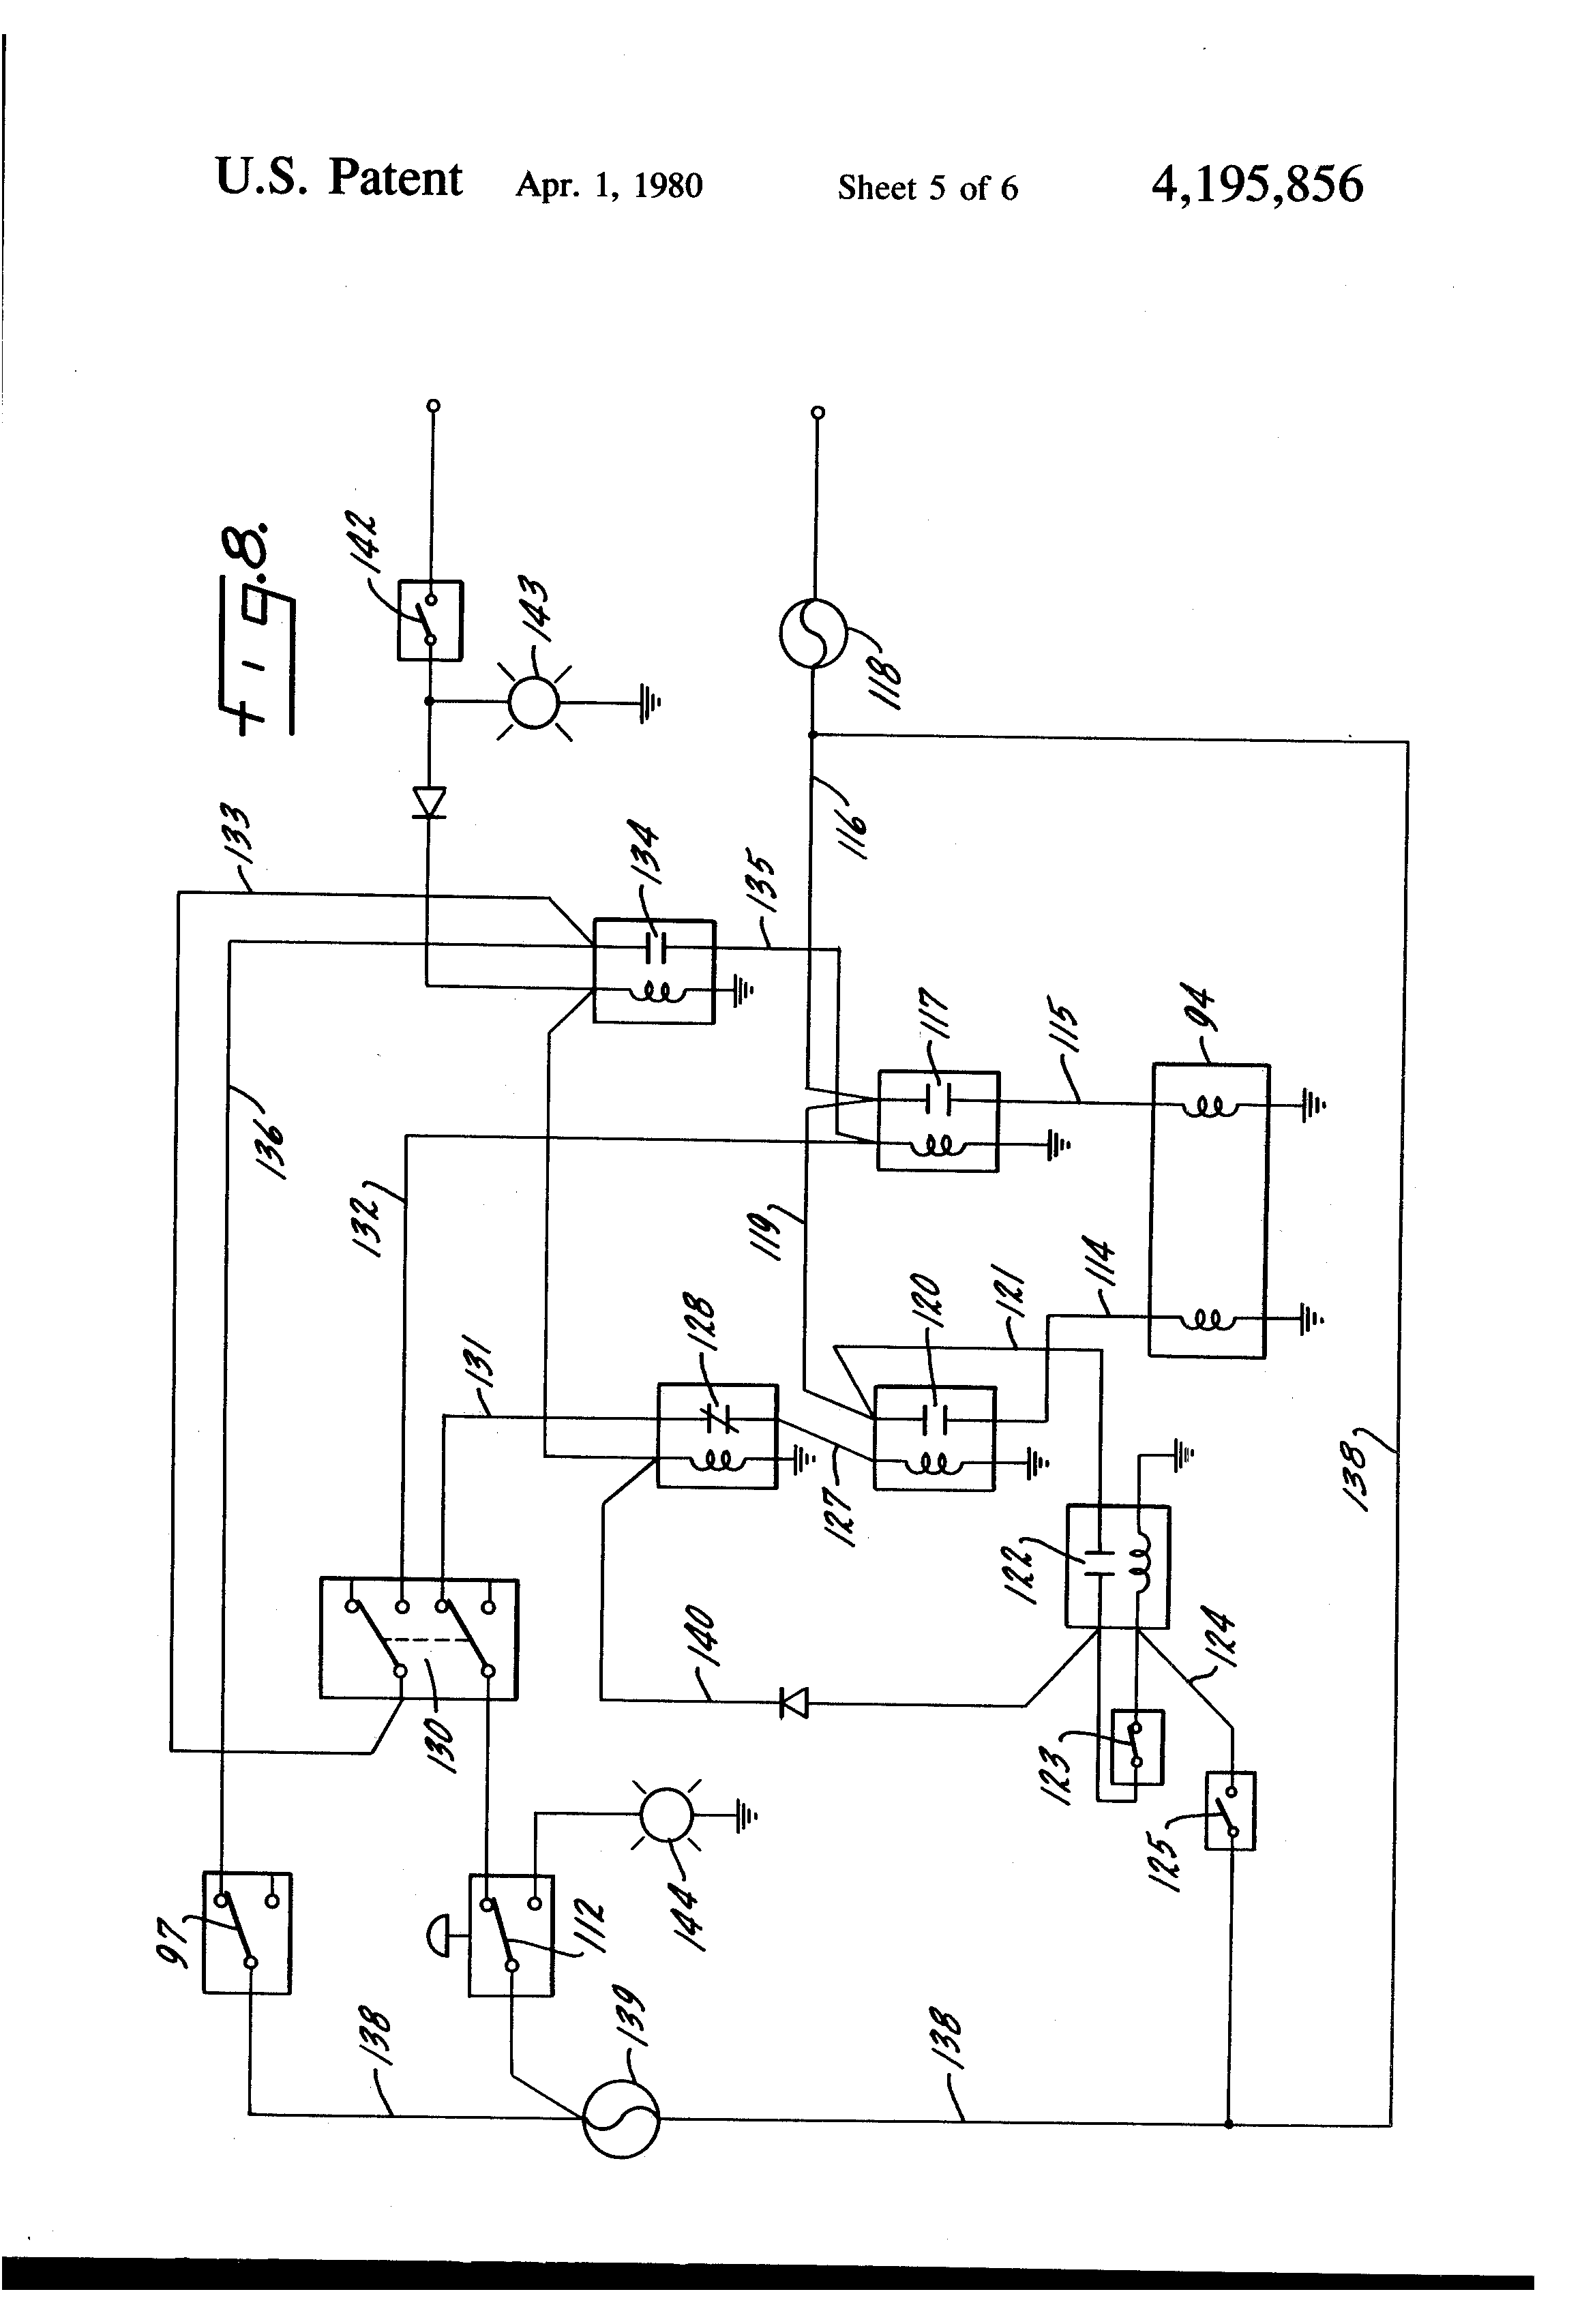 mcneilus mixer wiring diagrams wiring library u2022 rh lahood co mcneilus wiring diagram McCoy Miller Ambulance Wiring-Diagram